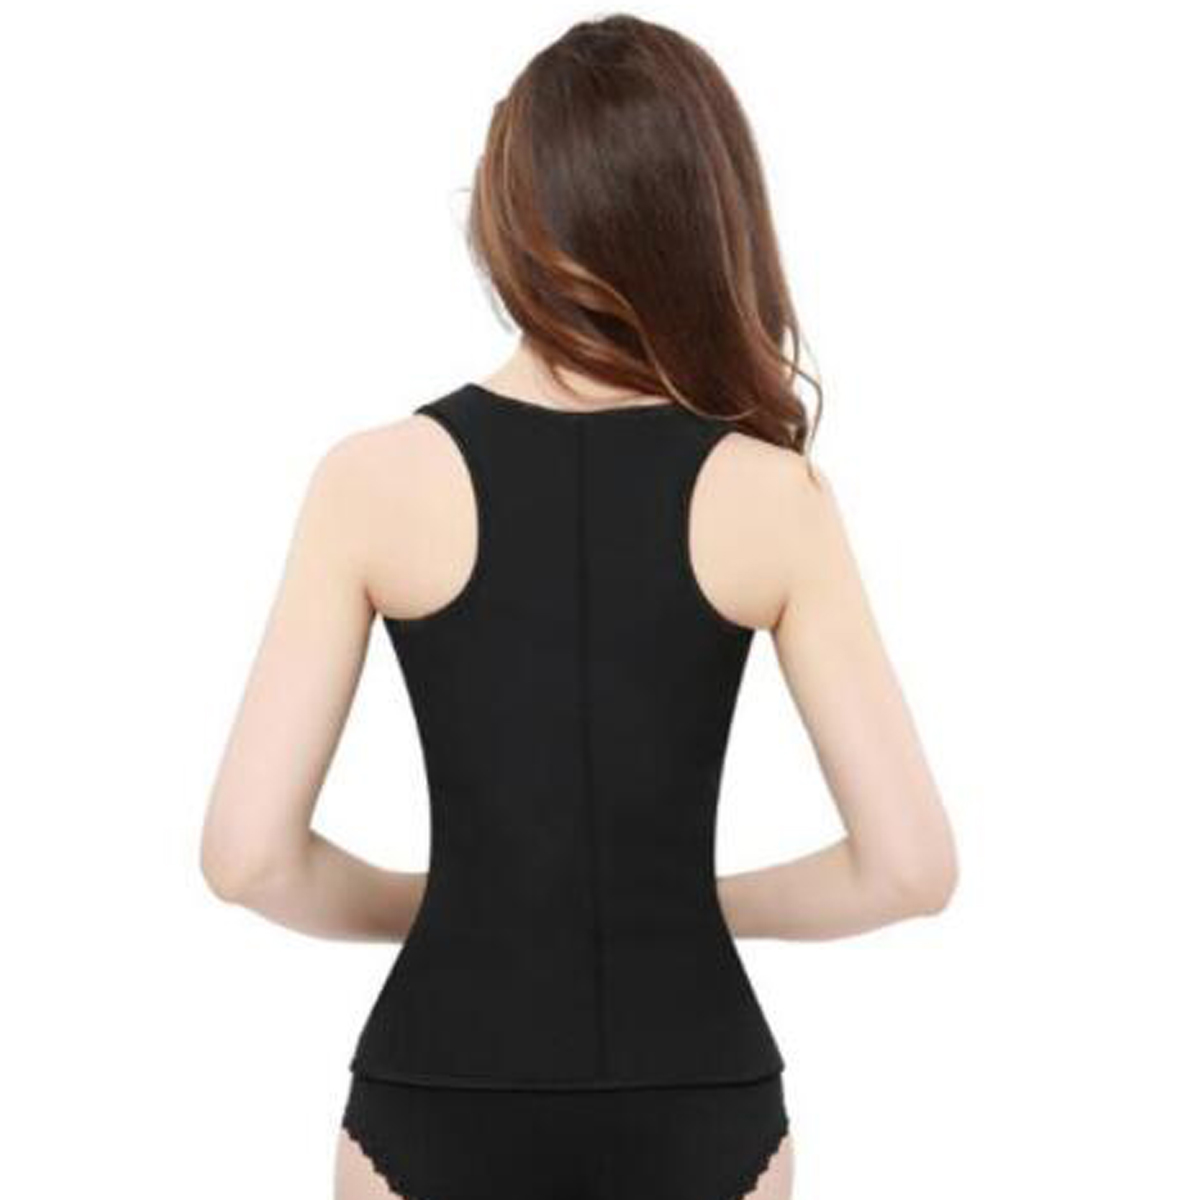 Neoprene Sauna Suit Sweat Vest Adjustable Waist Slim Trimmer Shaper